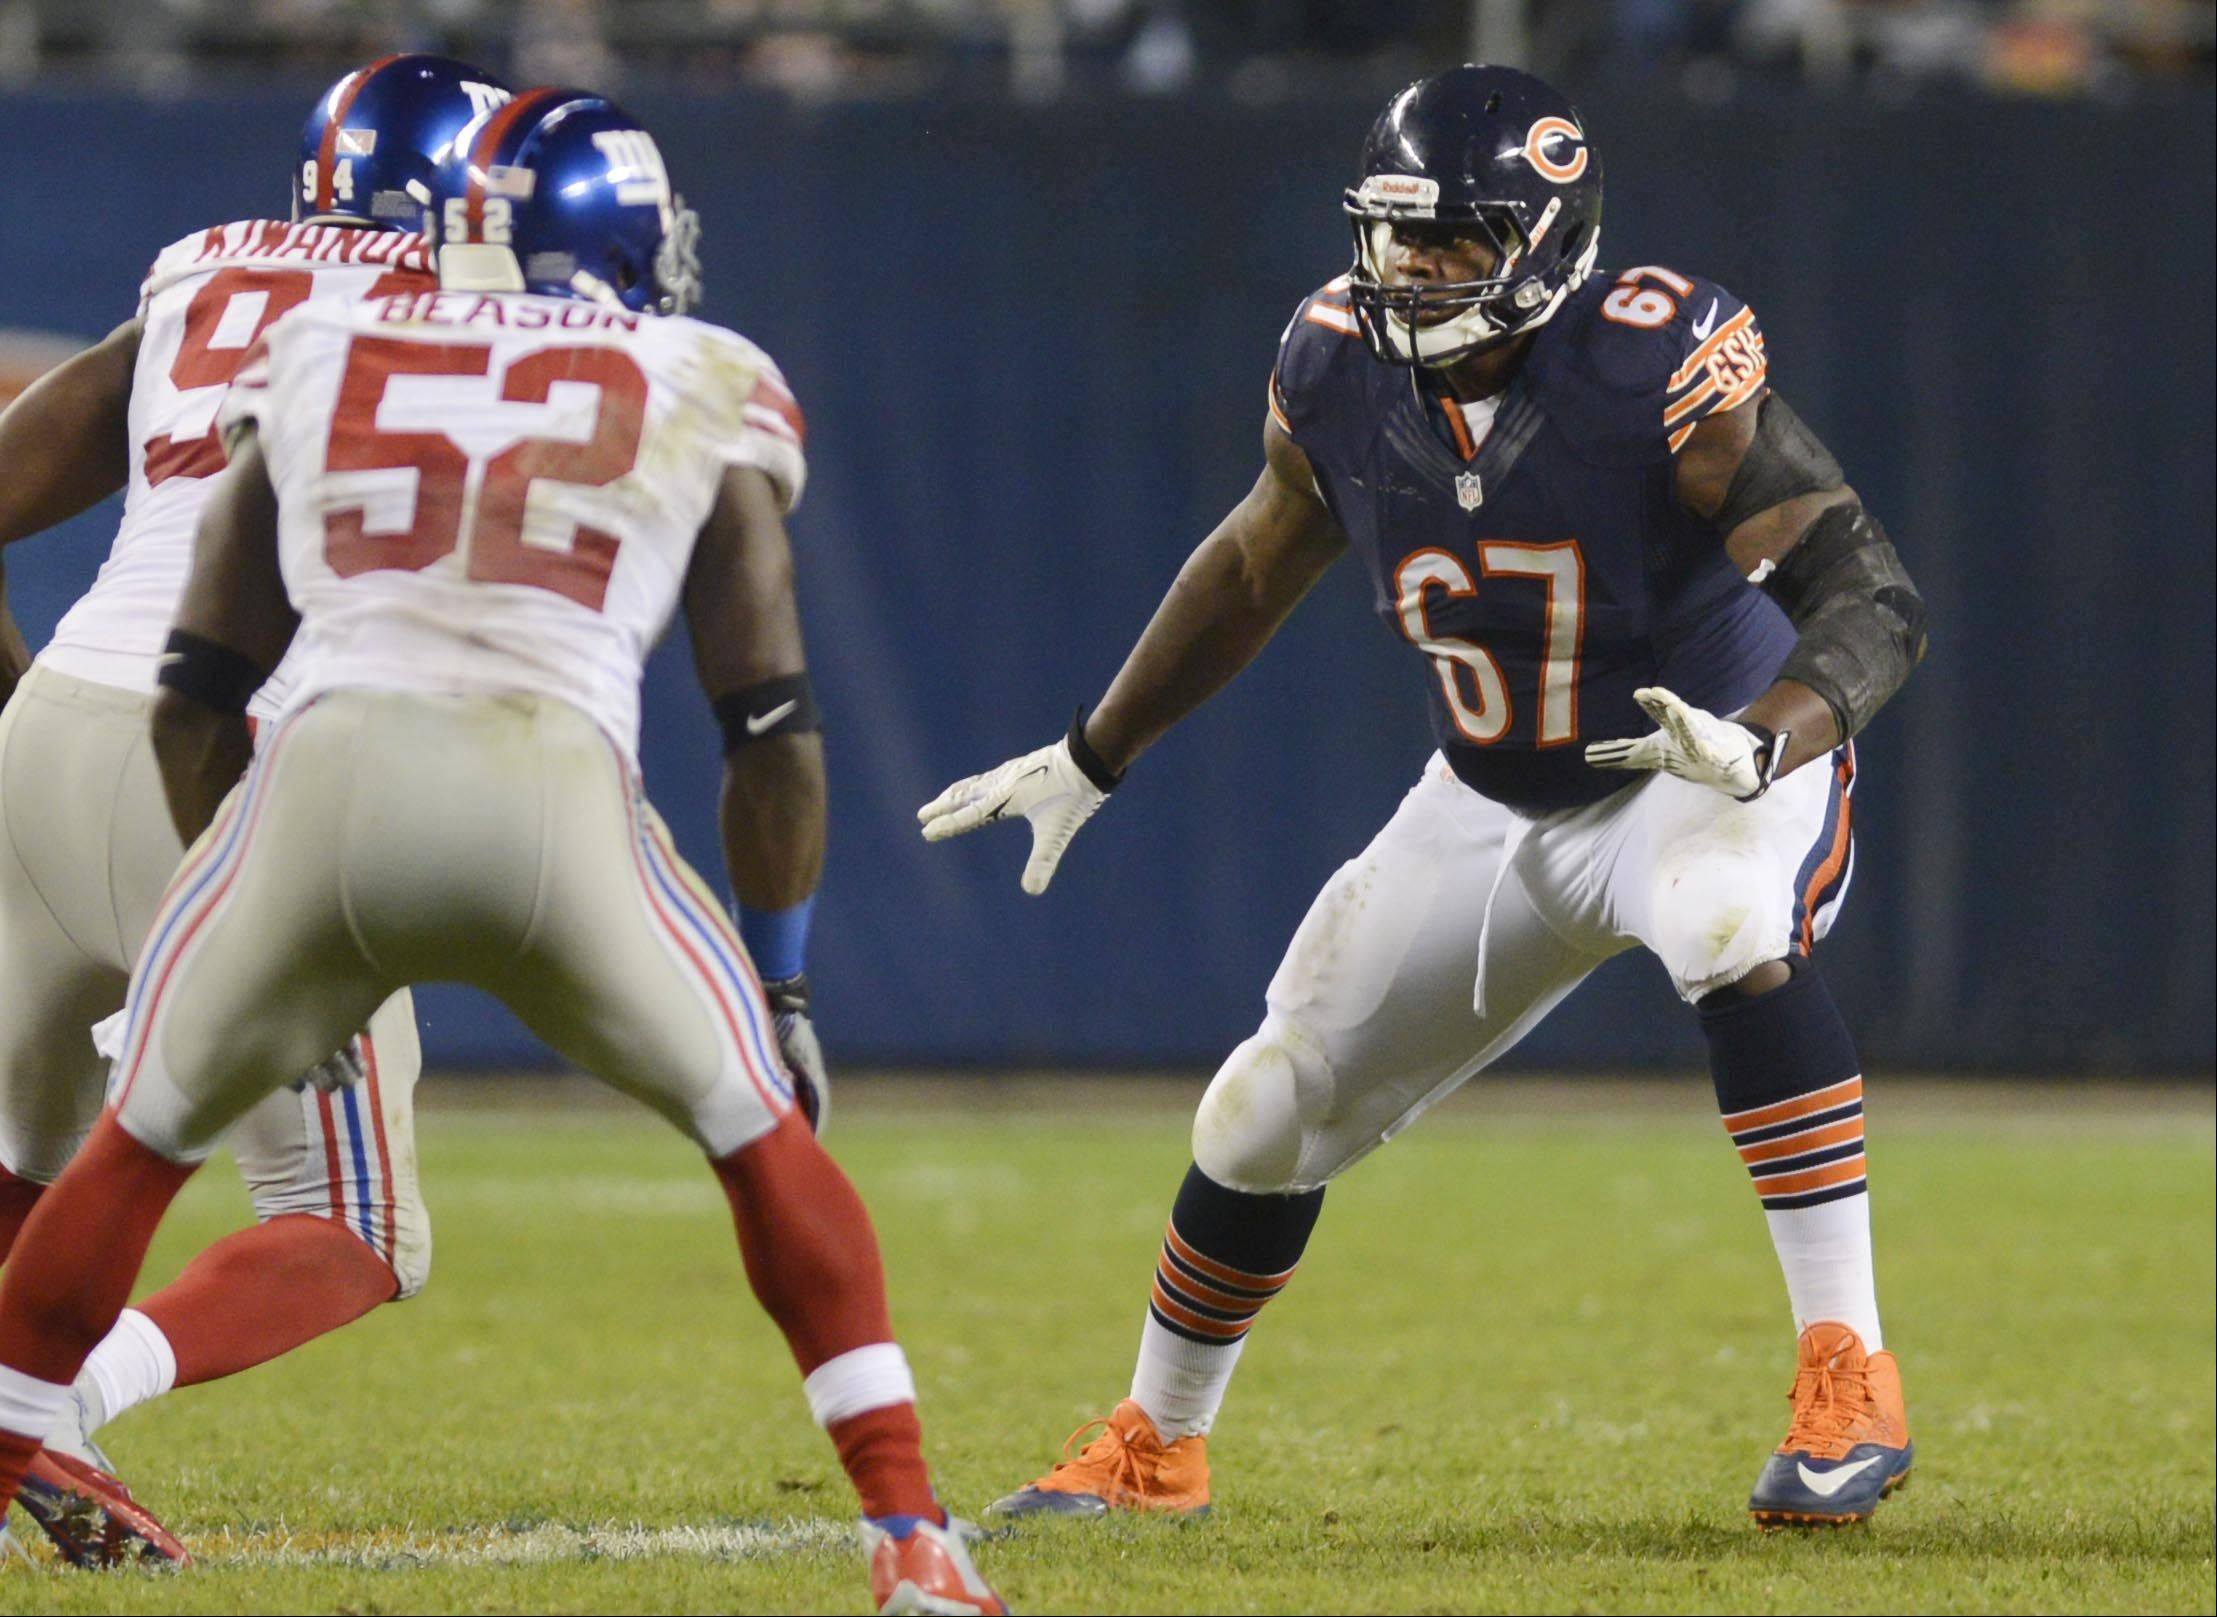 Bears offensive tackle Jordan Mills Thursday night at Soldier Field in Chicago.